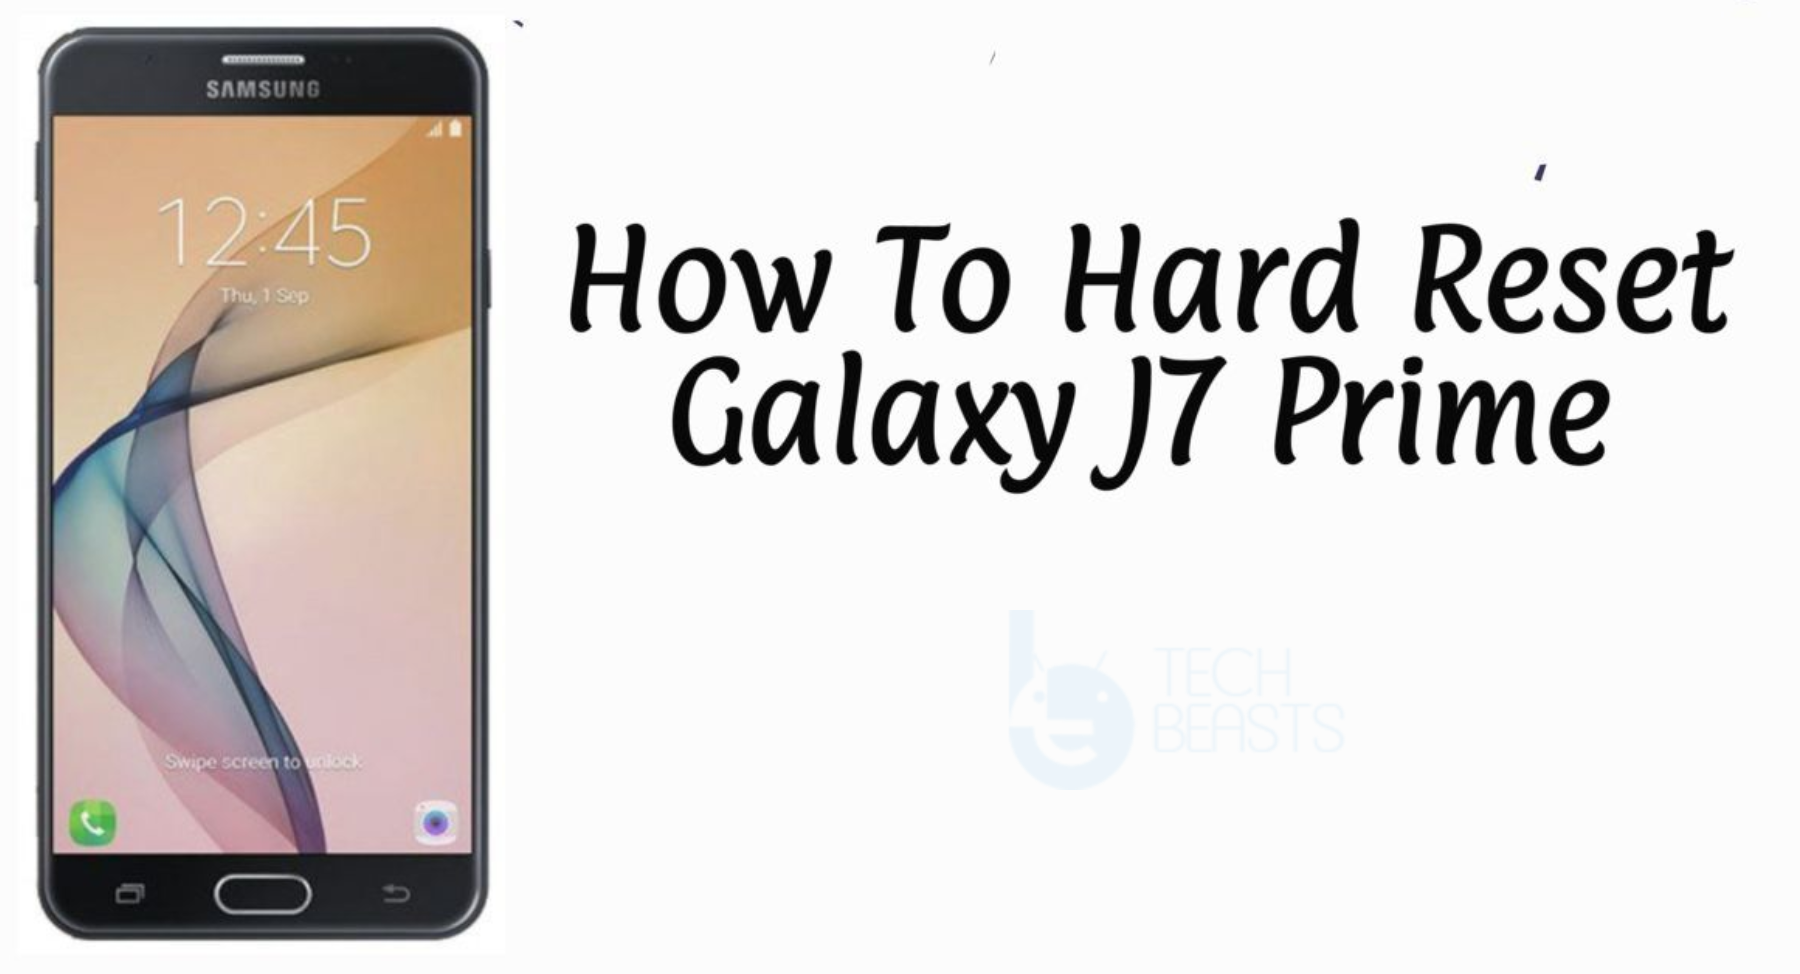 Hard Reset Galaxy J7 Prime